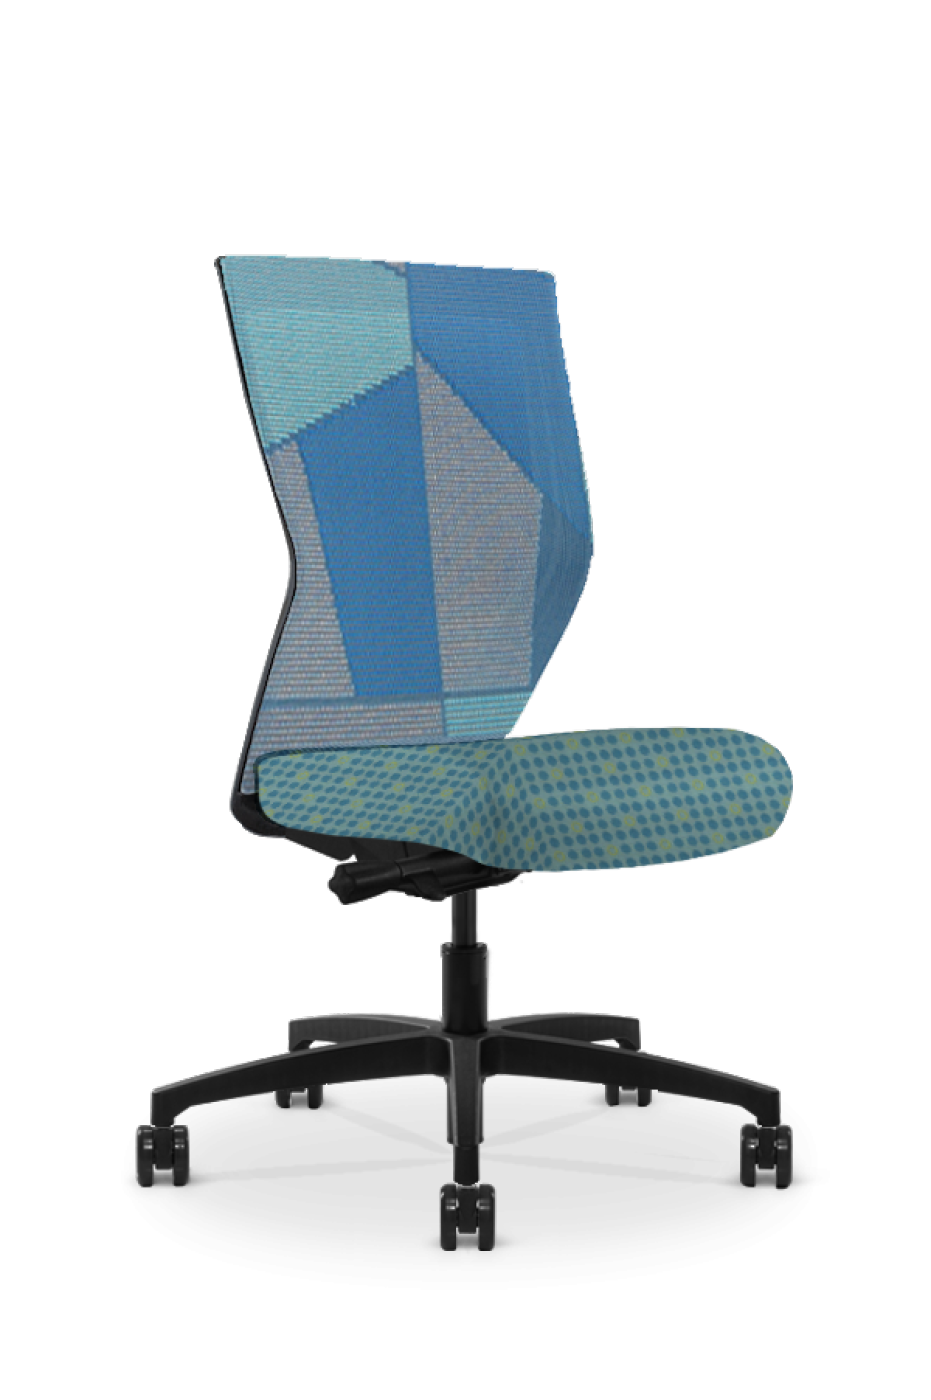 Quarter view of a Run II high-back chair, showing a combination of two patterns. The mesh back features a blue patchwork design, and the sea green cushion features a dot pattern.